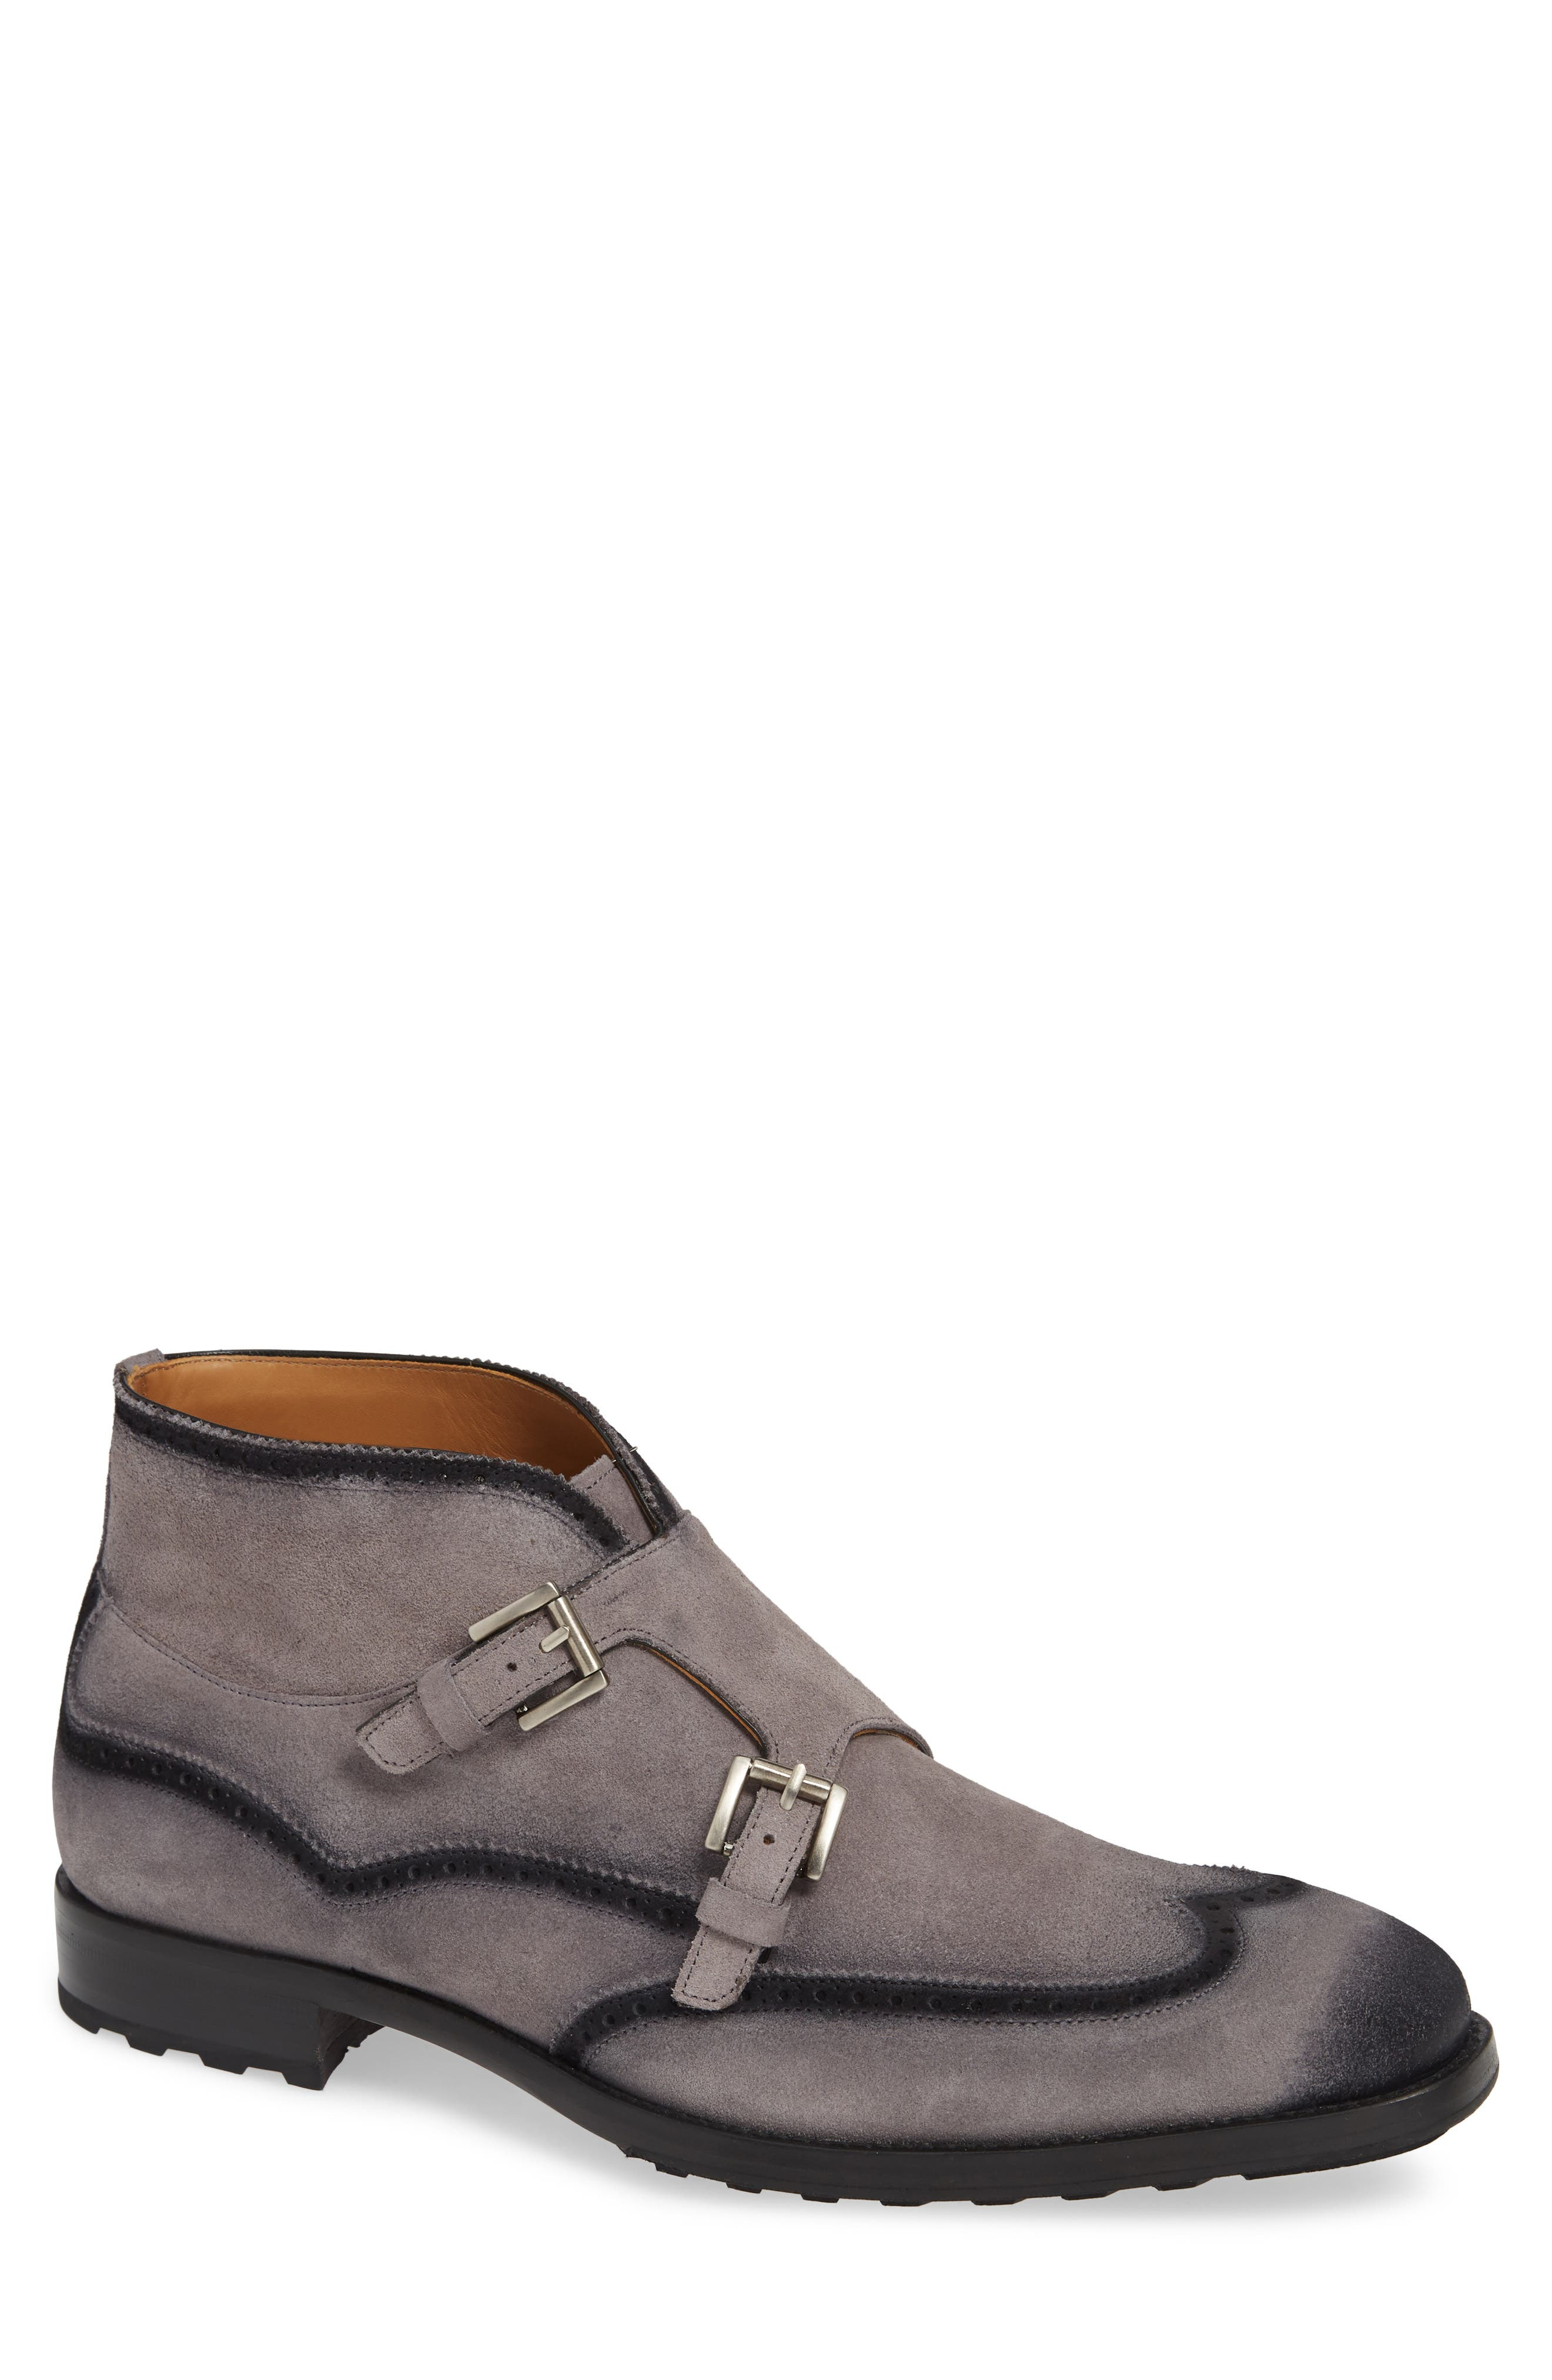 Mezlan Munoz Double Monk Strap Boot, Grey